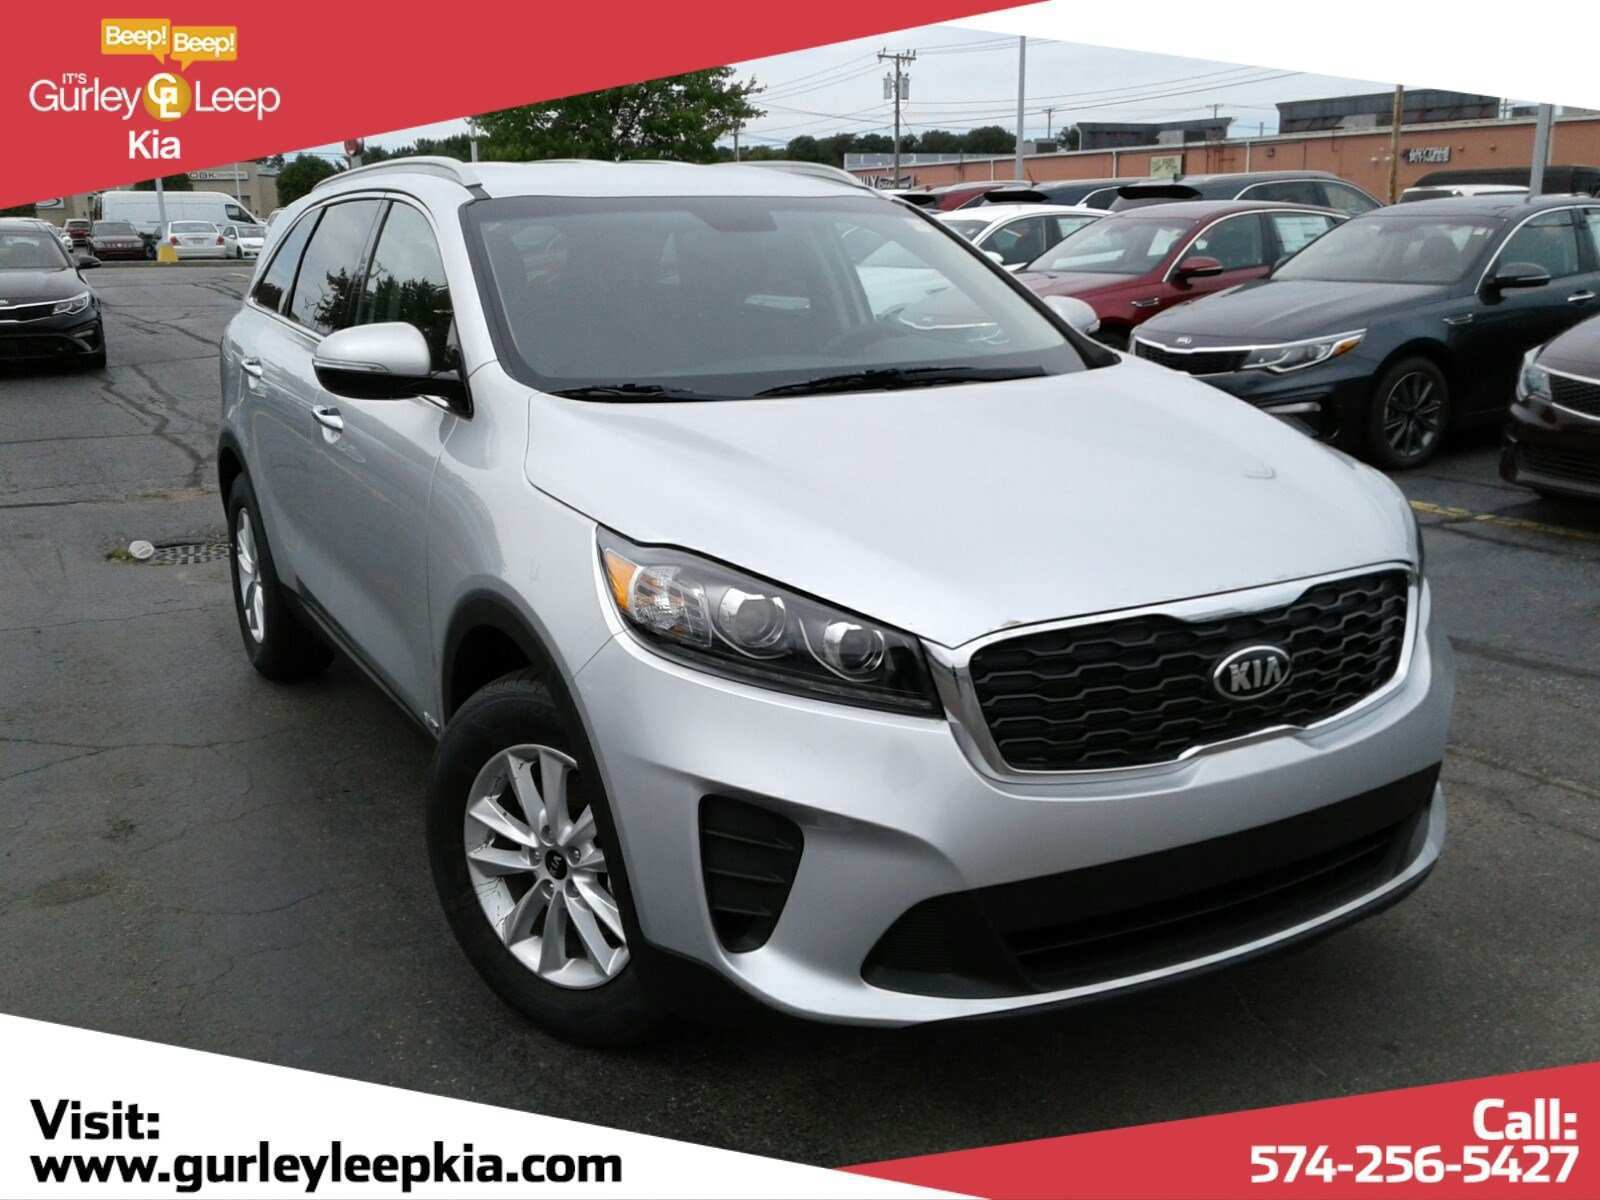 40 The Best 2019 Kia Sorento Trim Levels Price And Review